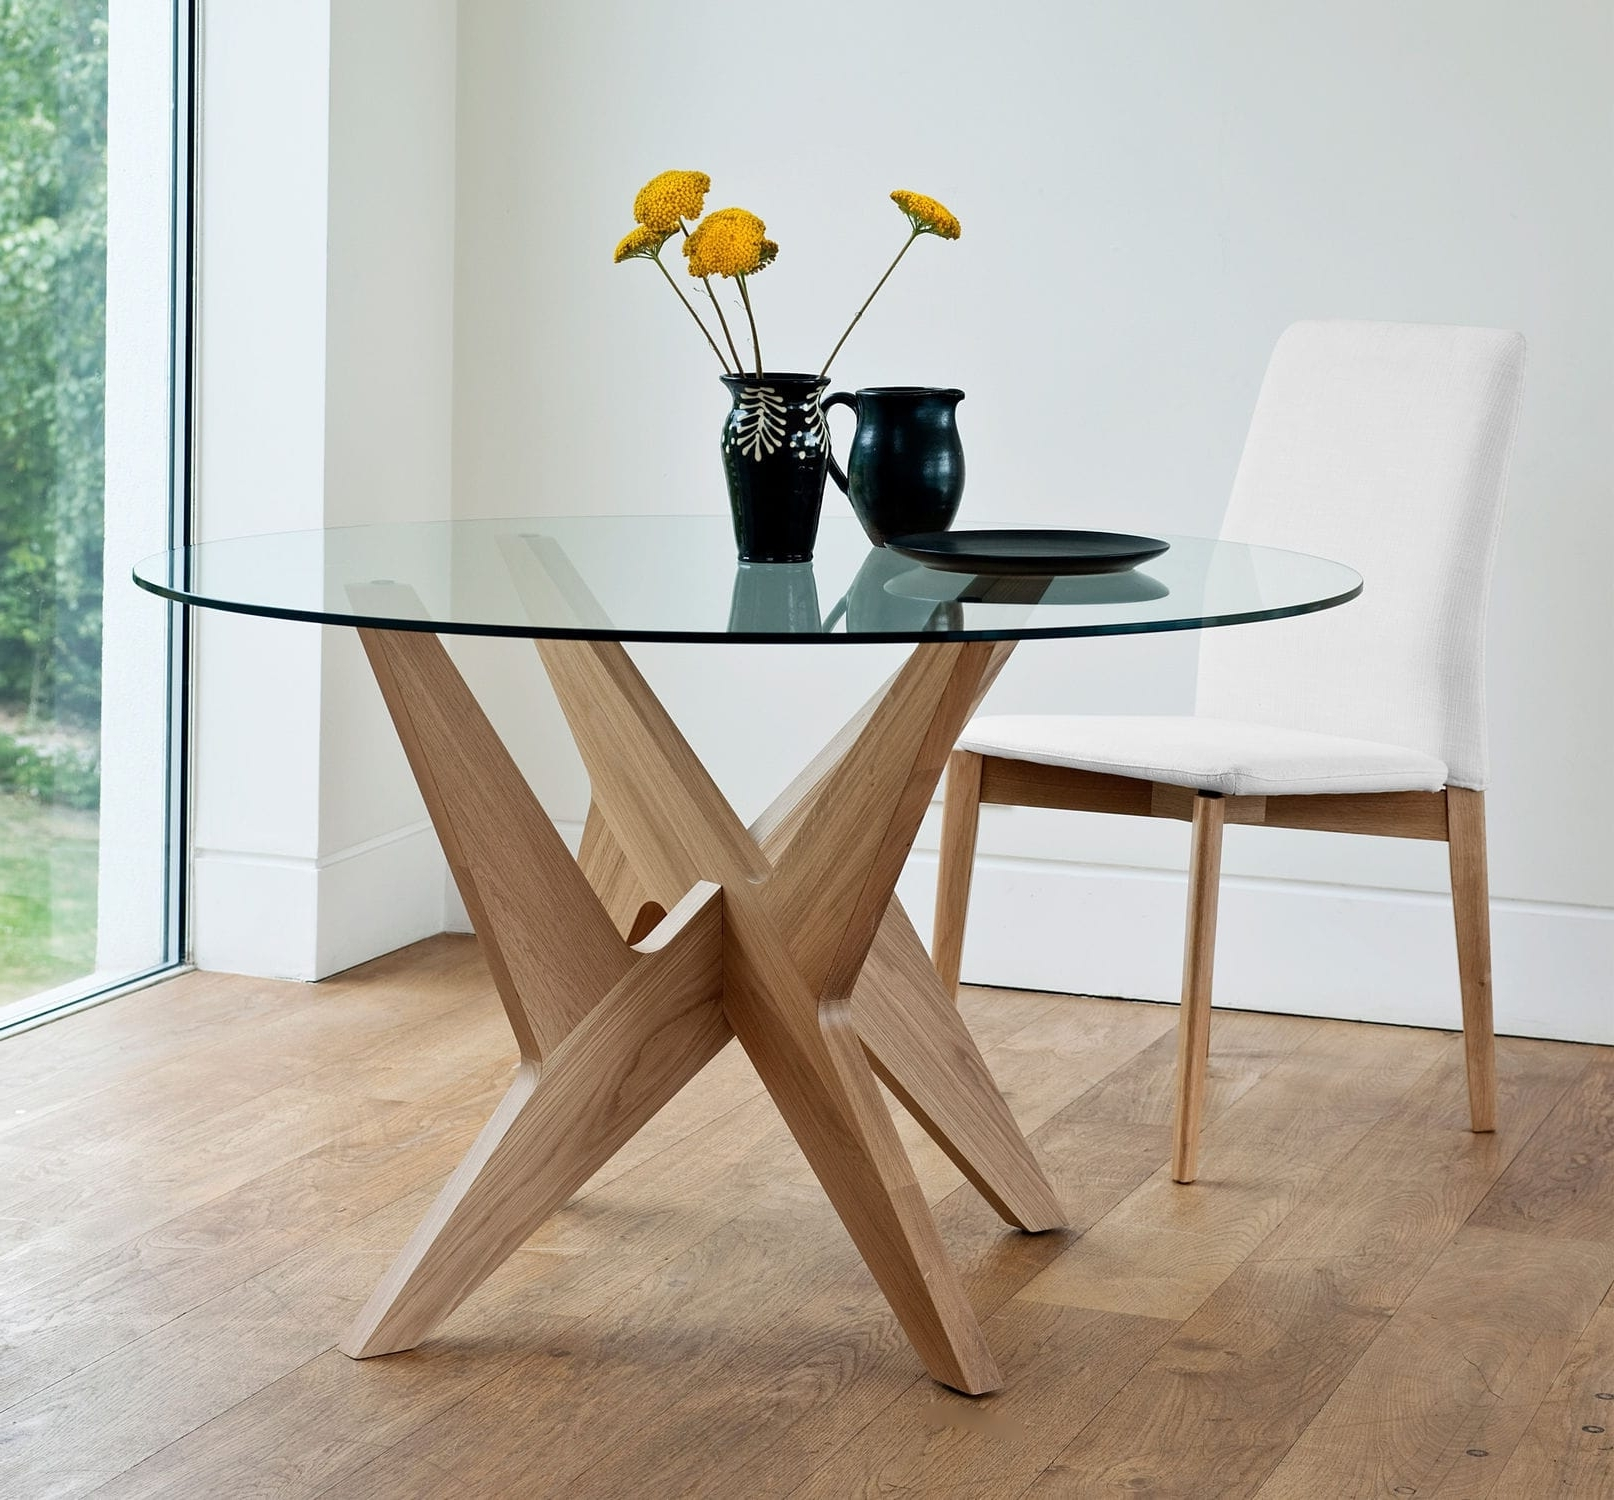 Fashionable Contemporary Dining Table / Glass / Oak / Round – Cross Side Within Glass Oak Dining Tables (View 7 of 25)